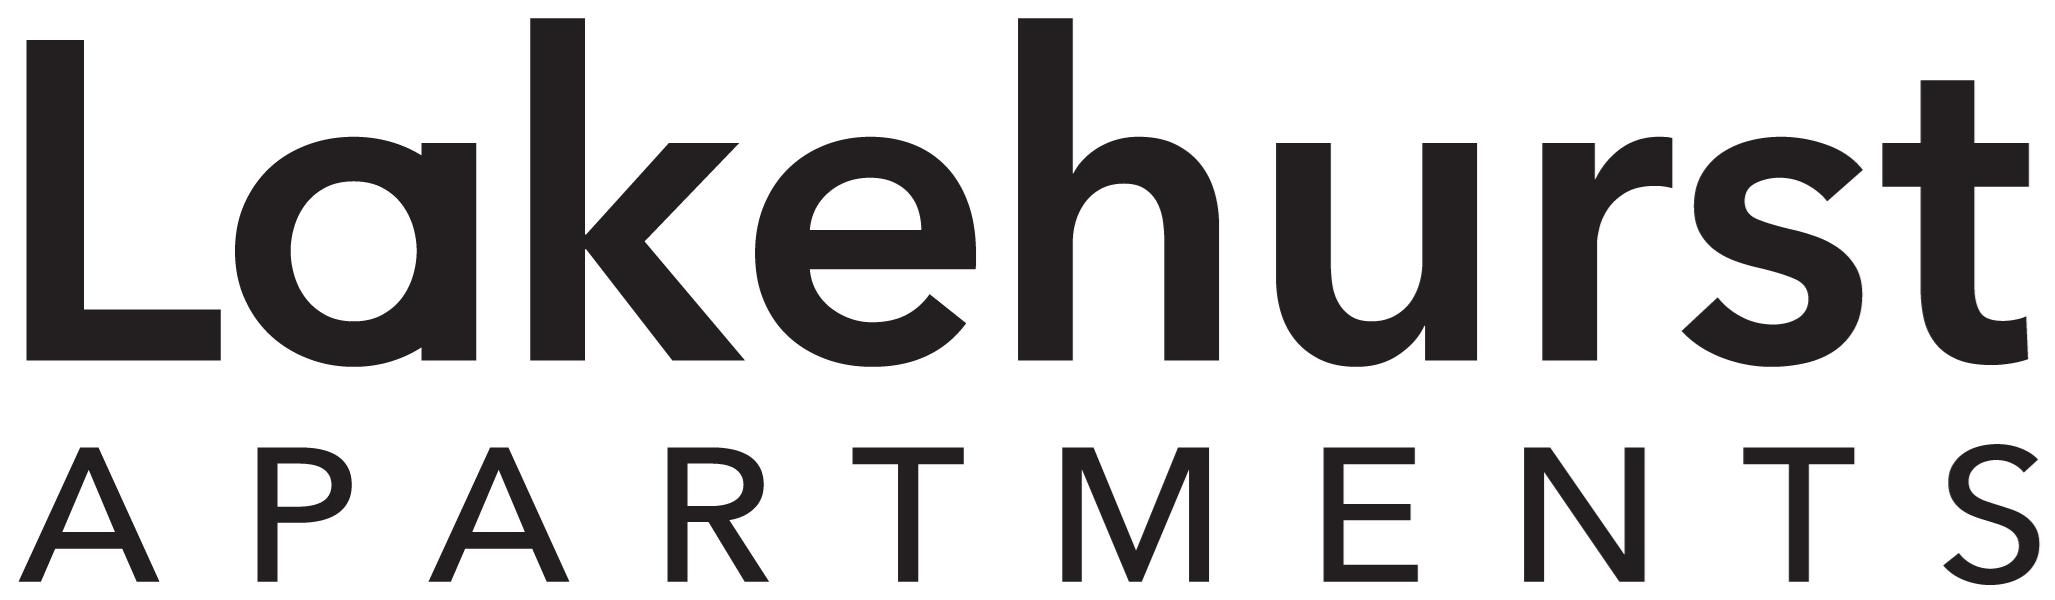 Lakehurst Apartments Property Logo 14